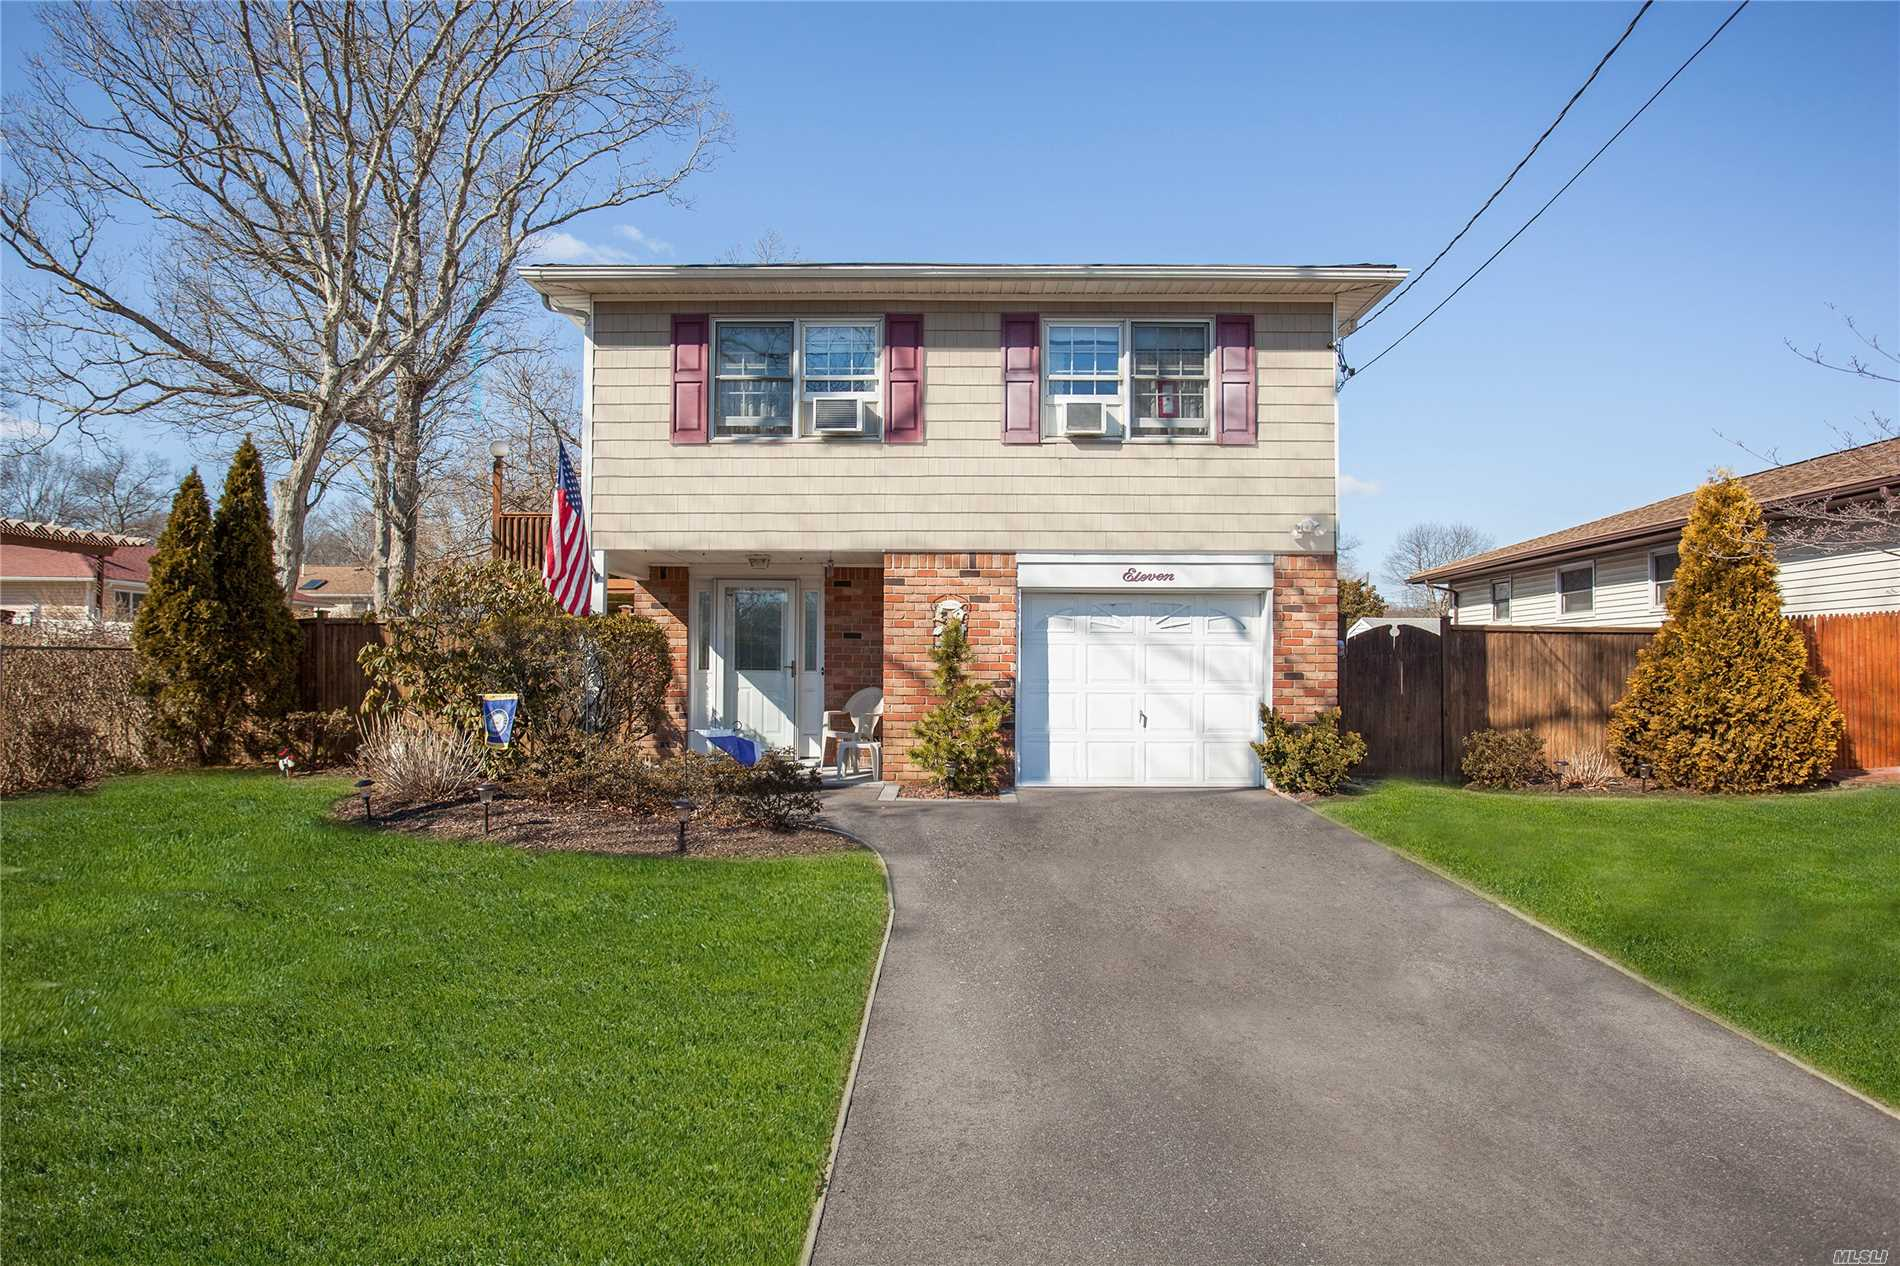 Plenty Of Space For All Large Rooms Throughout, Hardwood Under Second Floor Carpets, Updated Burner and Oil Tank, New Washer, And New Bath. Sliders Lead Out To The Deck And Spacious Yard With Brick Patio And Two Sheds. So Much Potential In This Home. Not To Be Missed! Taxes with star 8298.55